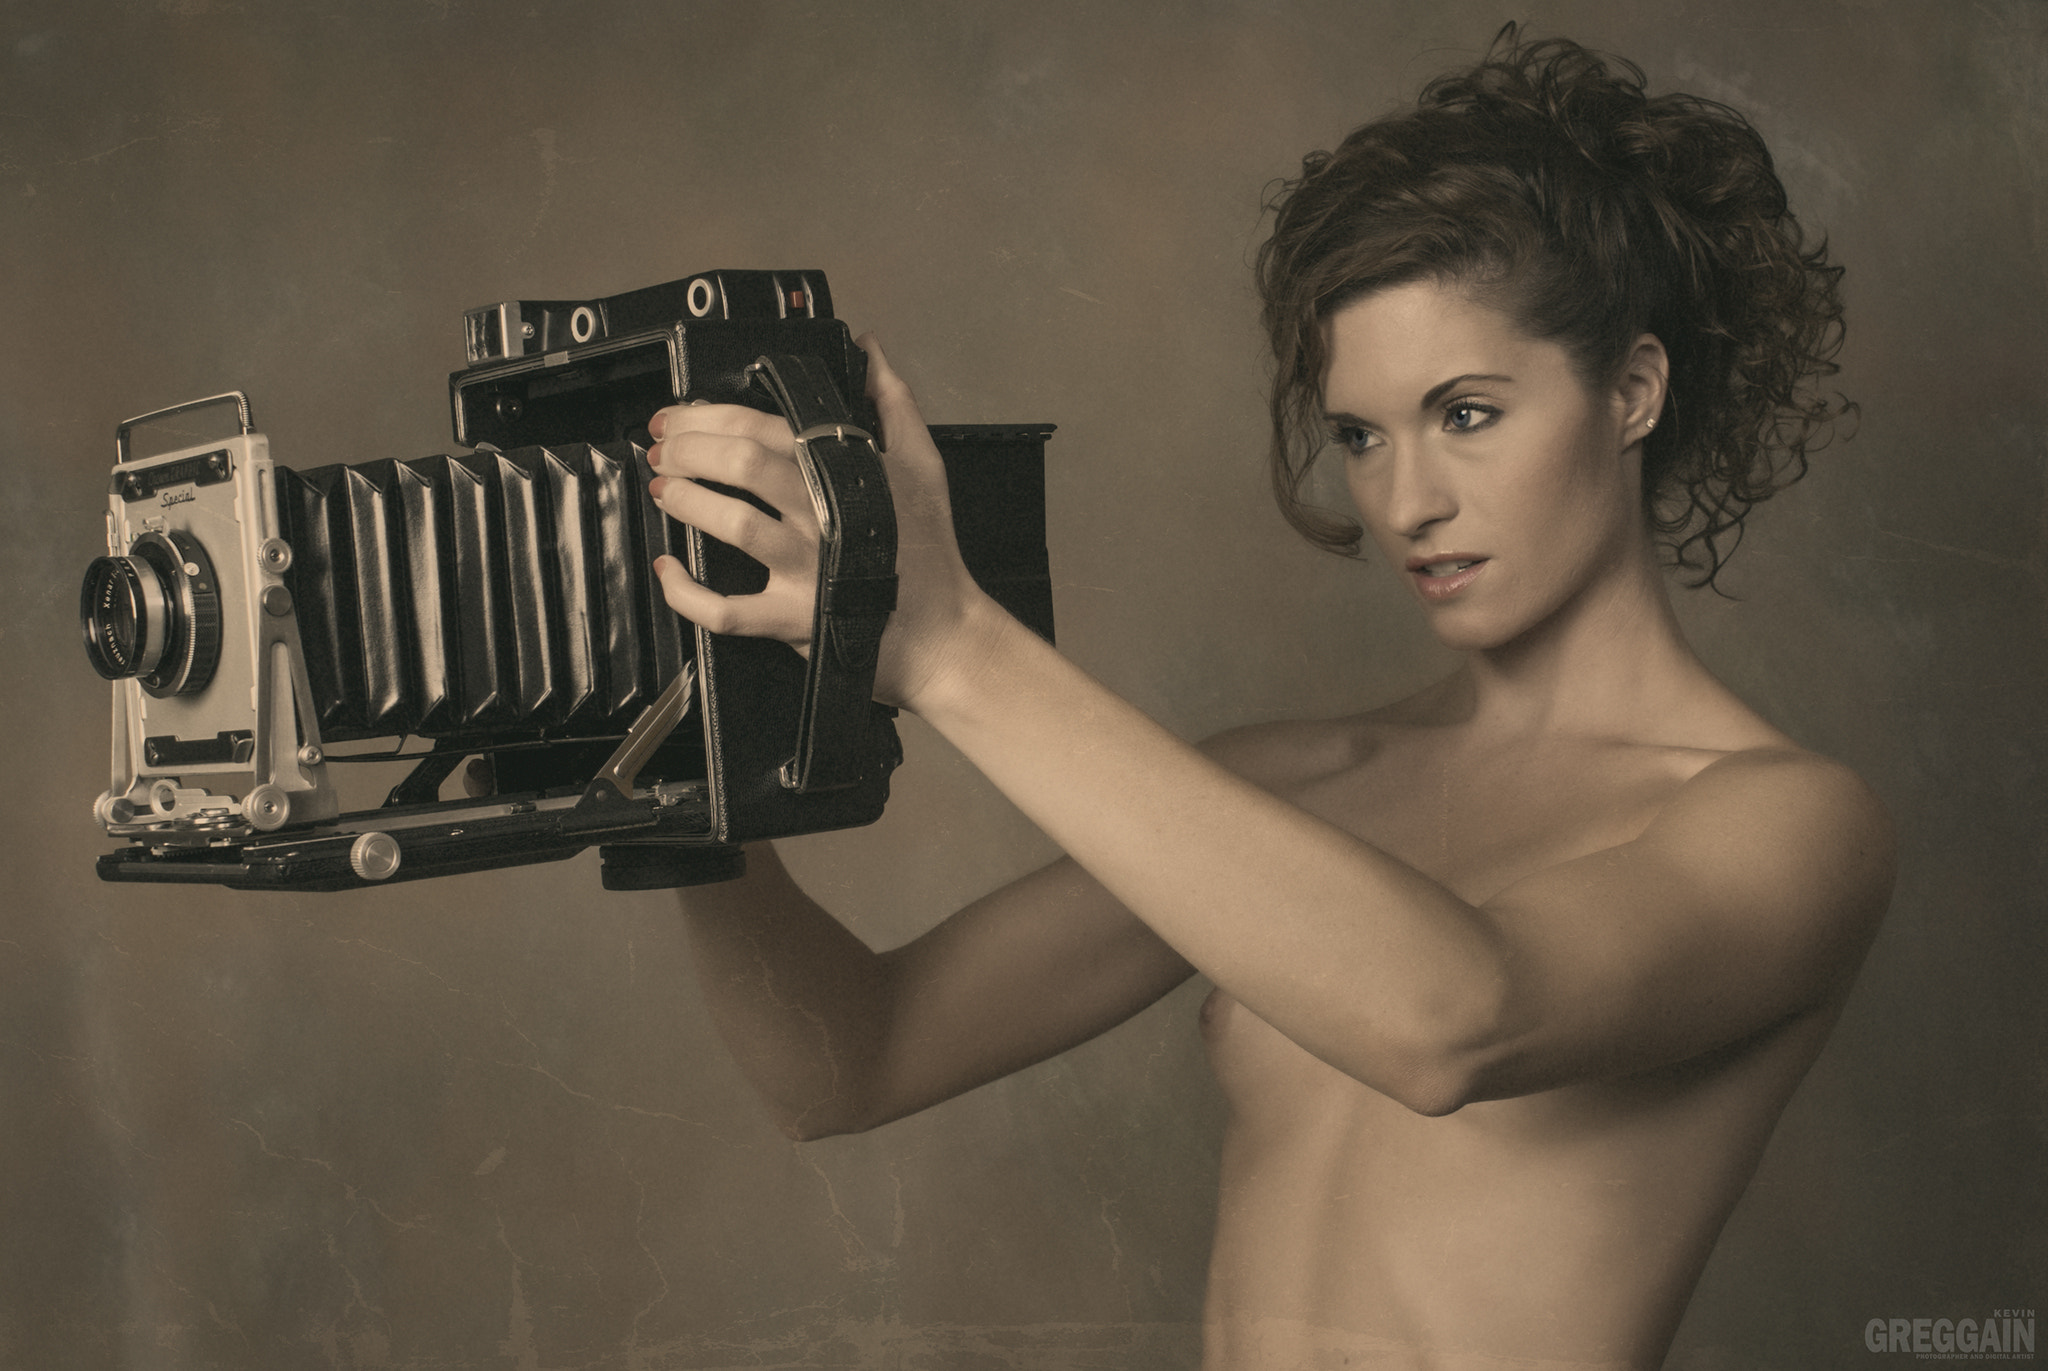 Photograph Self portraits are hard to do by Kevin Greggain on 500px